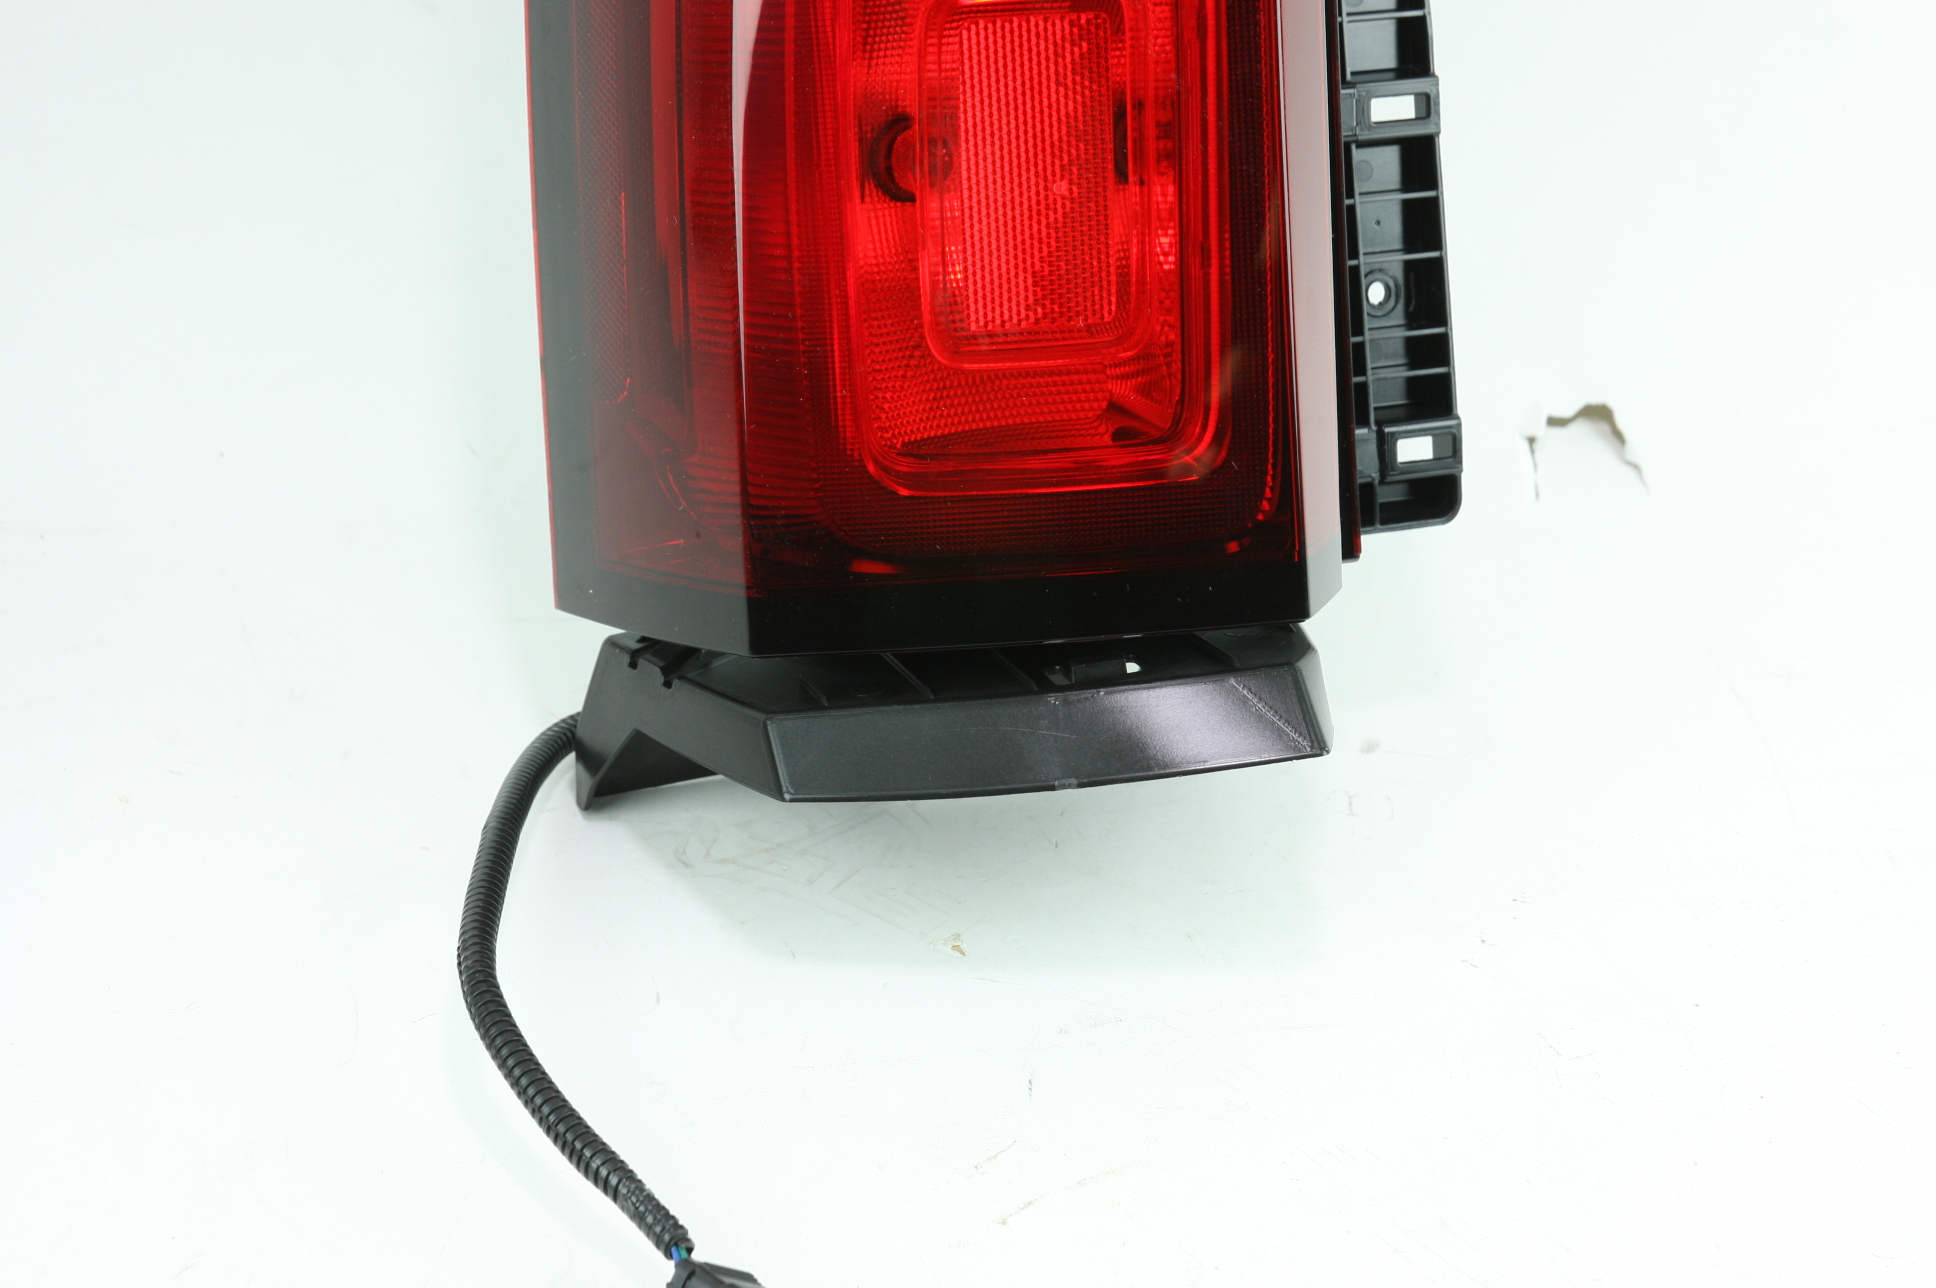 New Genuine OEM 23407432 GM Left Tail Lamp 15-19 Chevy Tahoe & Suburban NIP - image 5